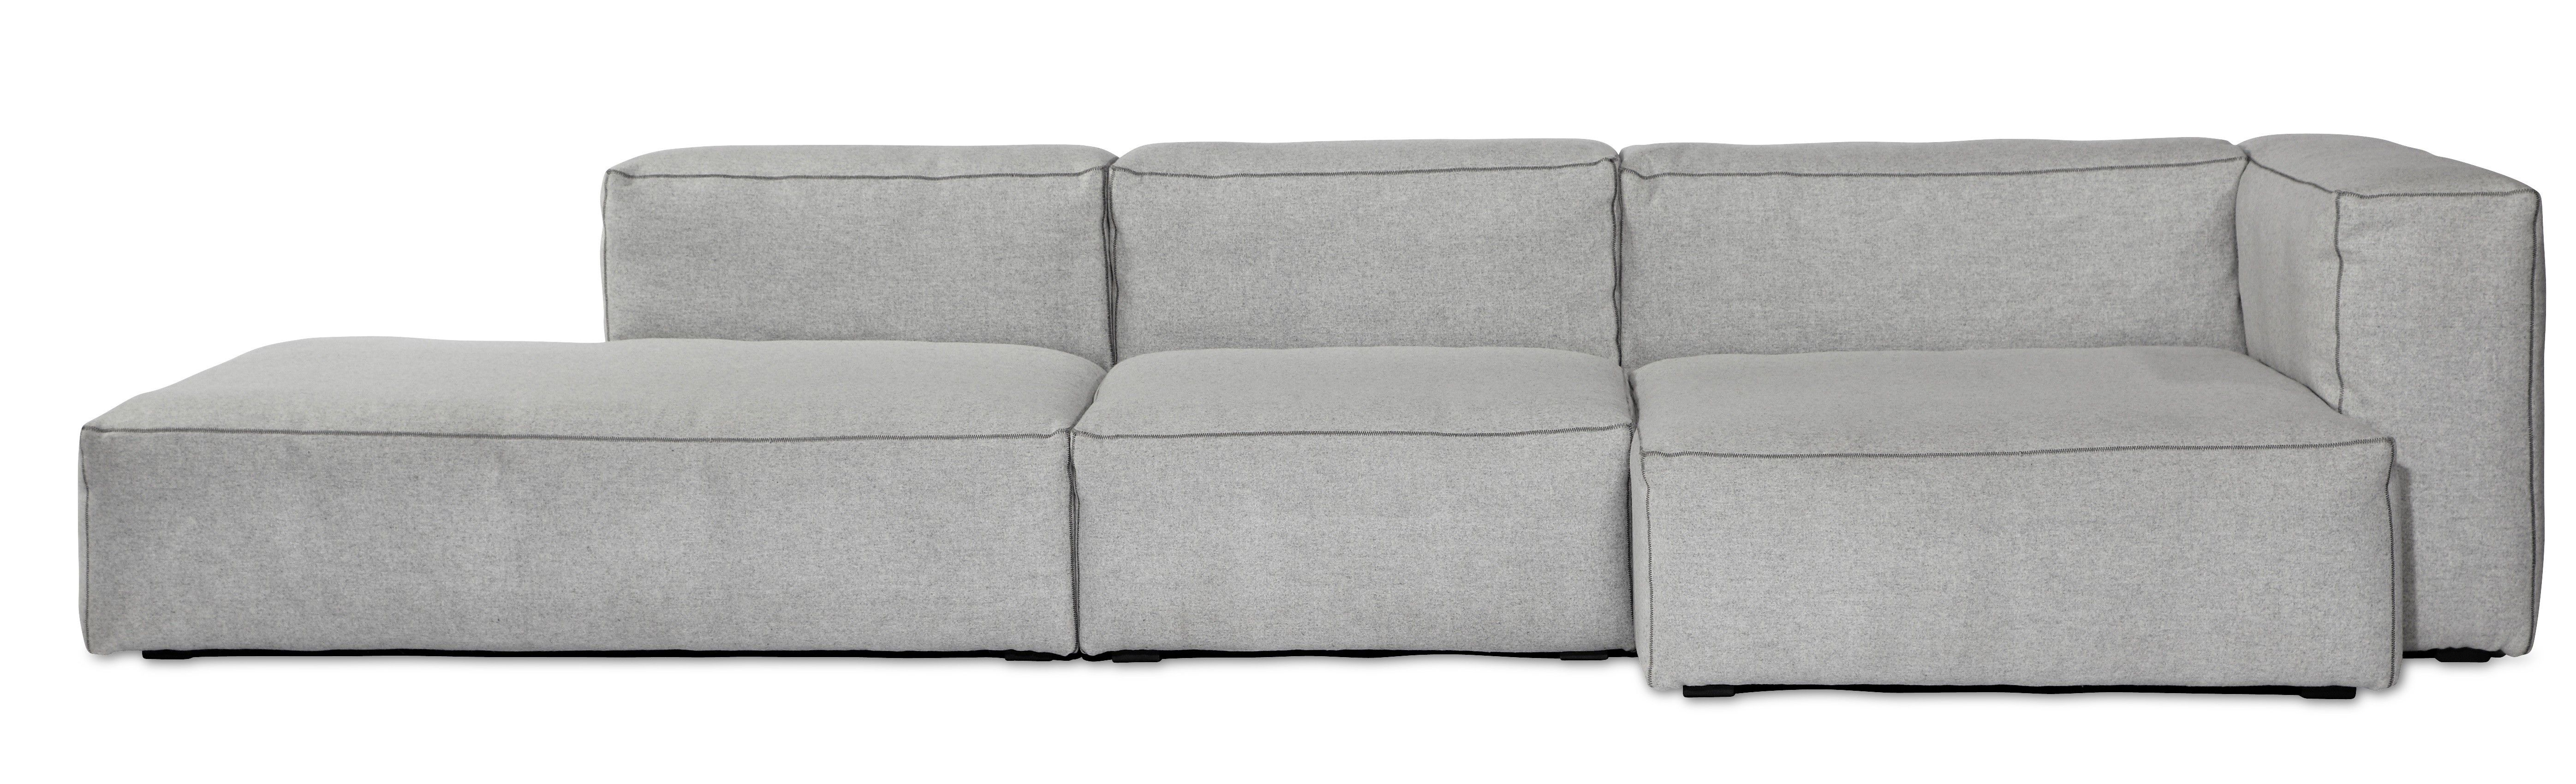 hay mags soft sofa bank | new livingroom | pinterest